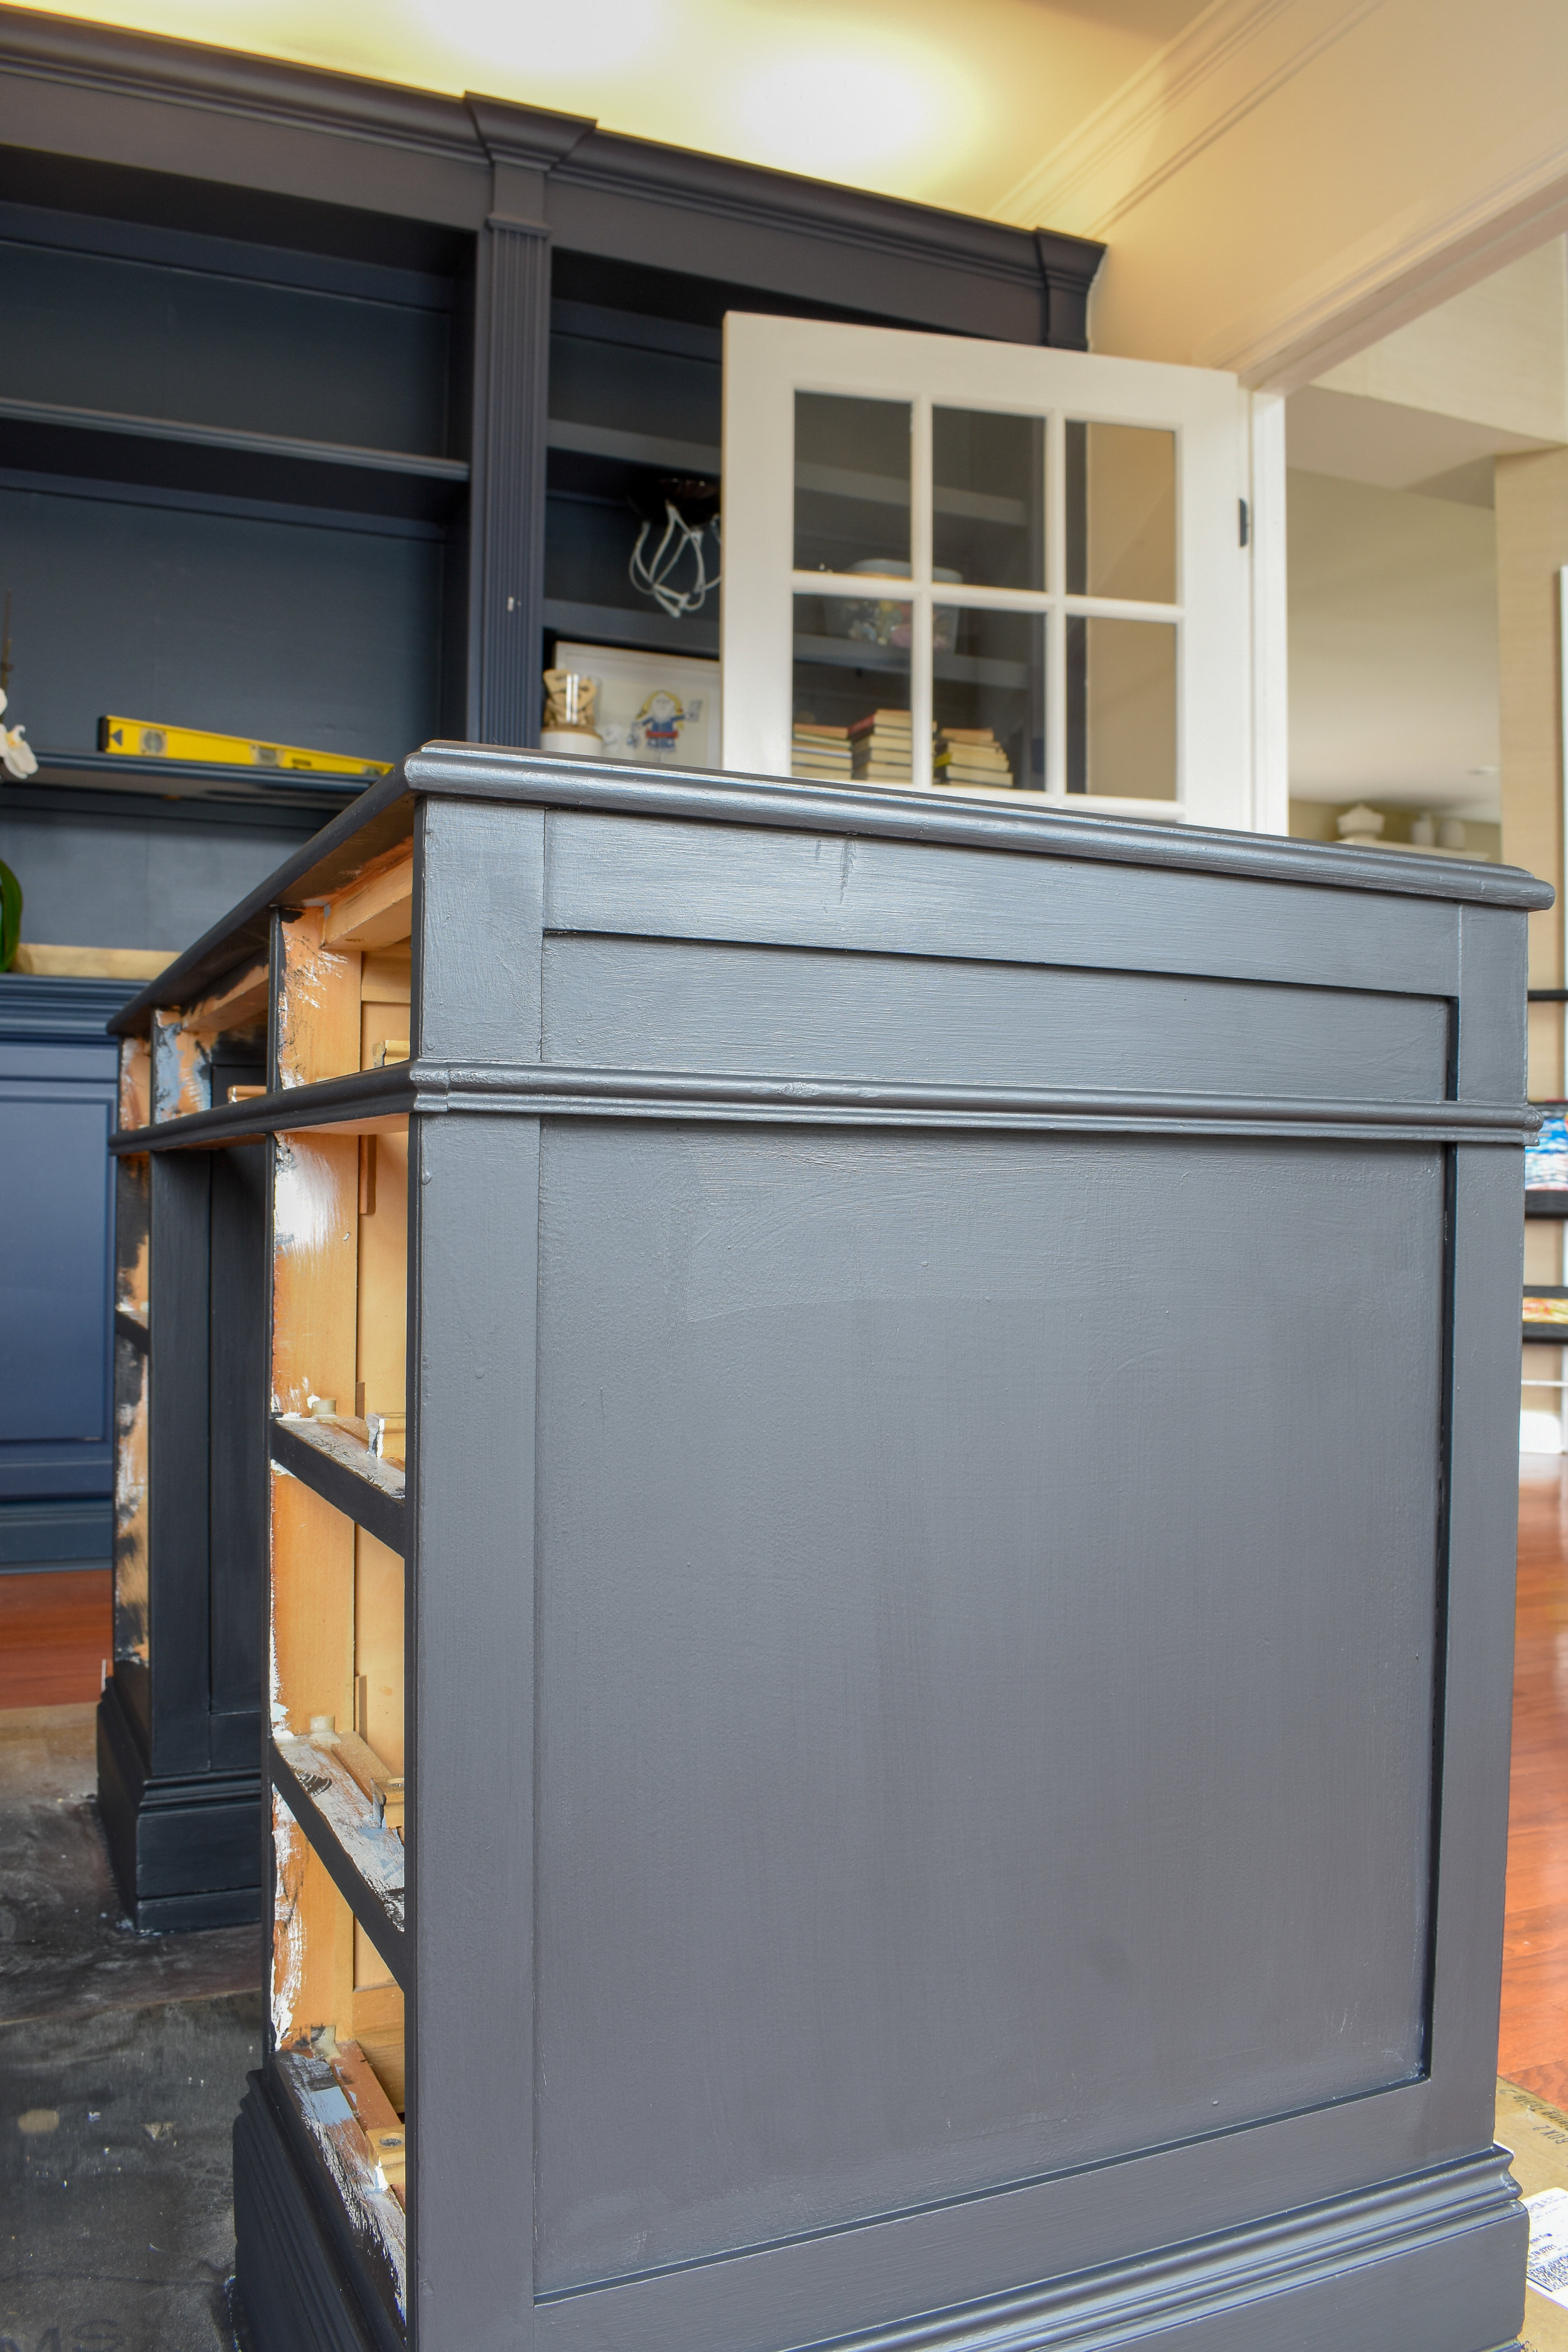 Chalk Paint Finish For Less: I used flat (or matte) black paint, sourced from my local home improvement store and tinted to my desired color.